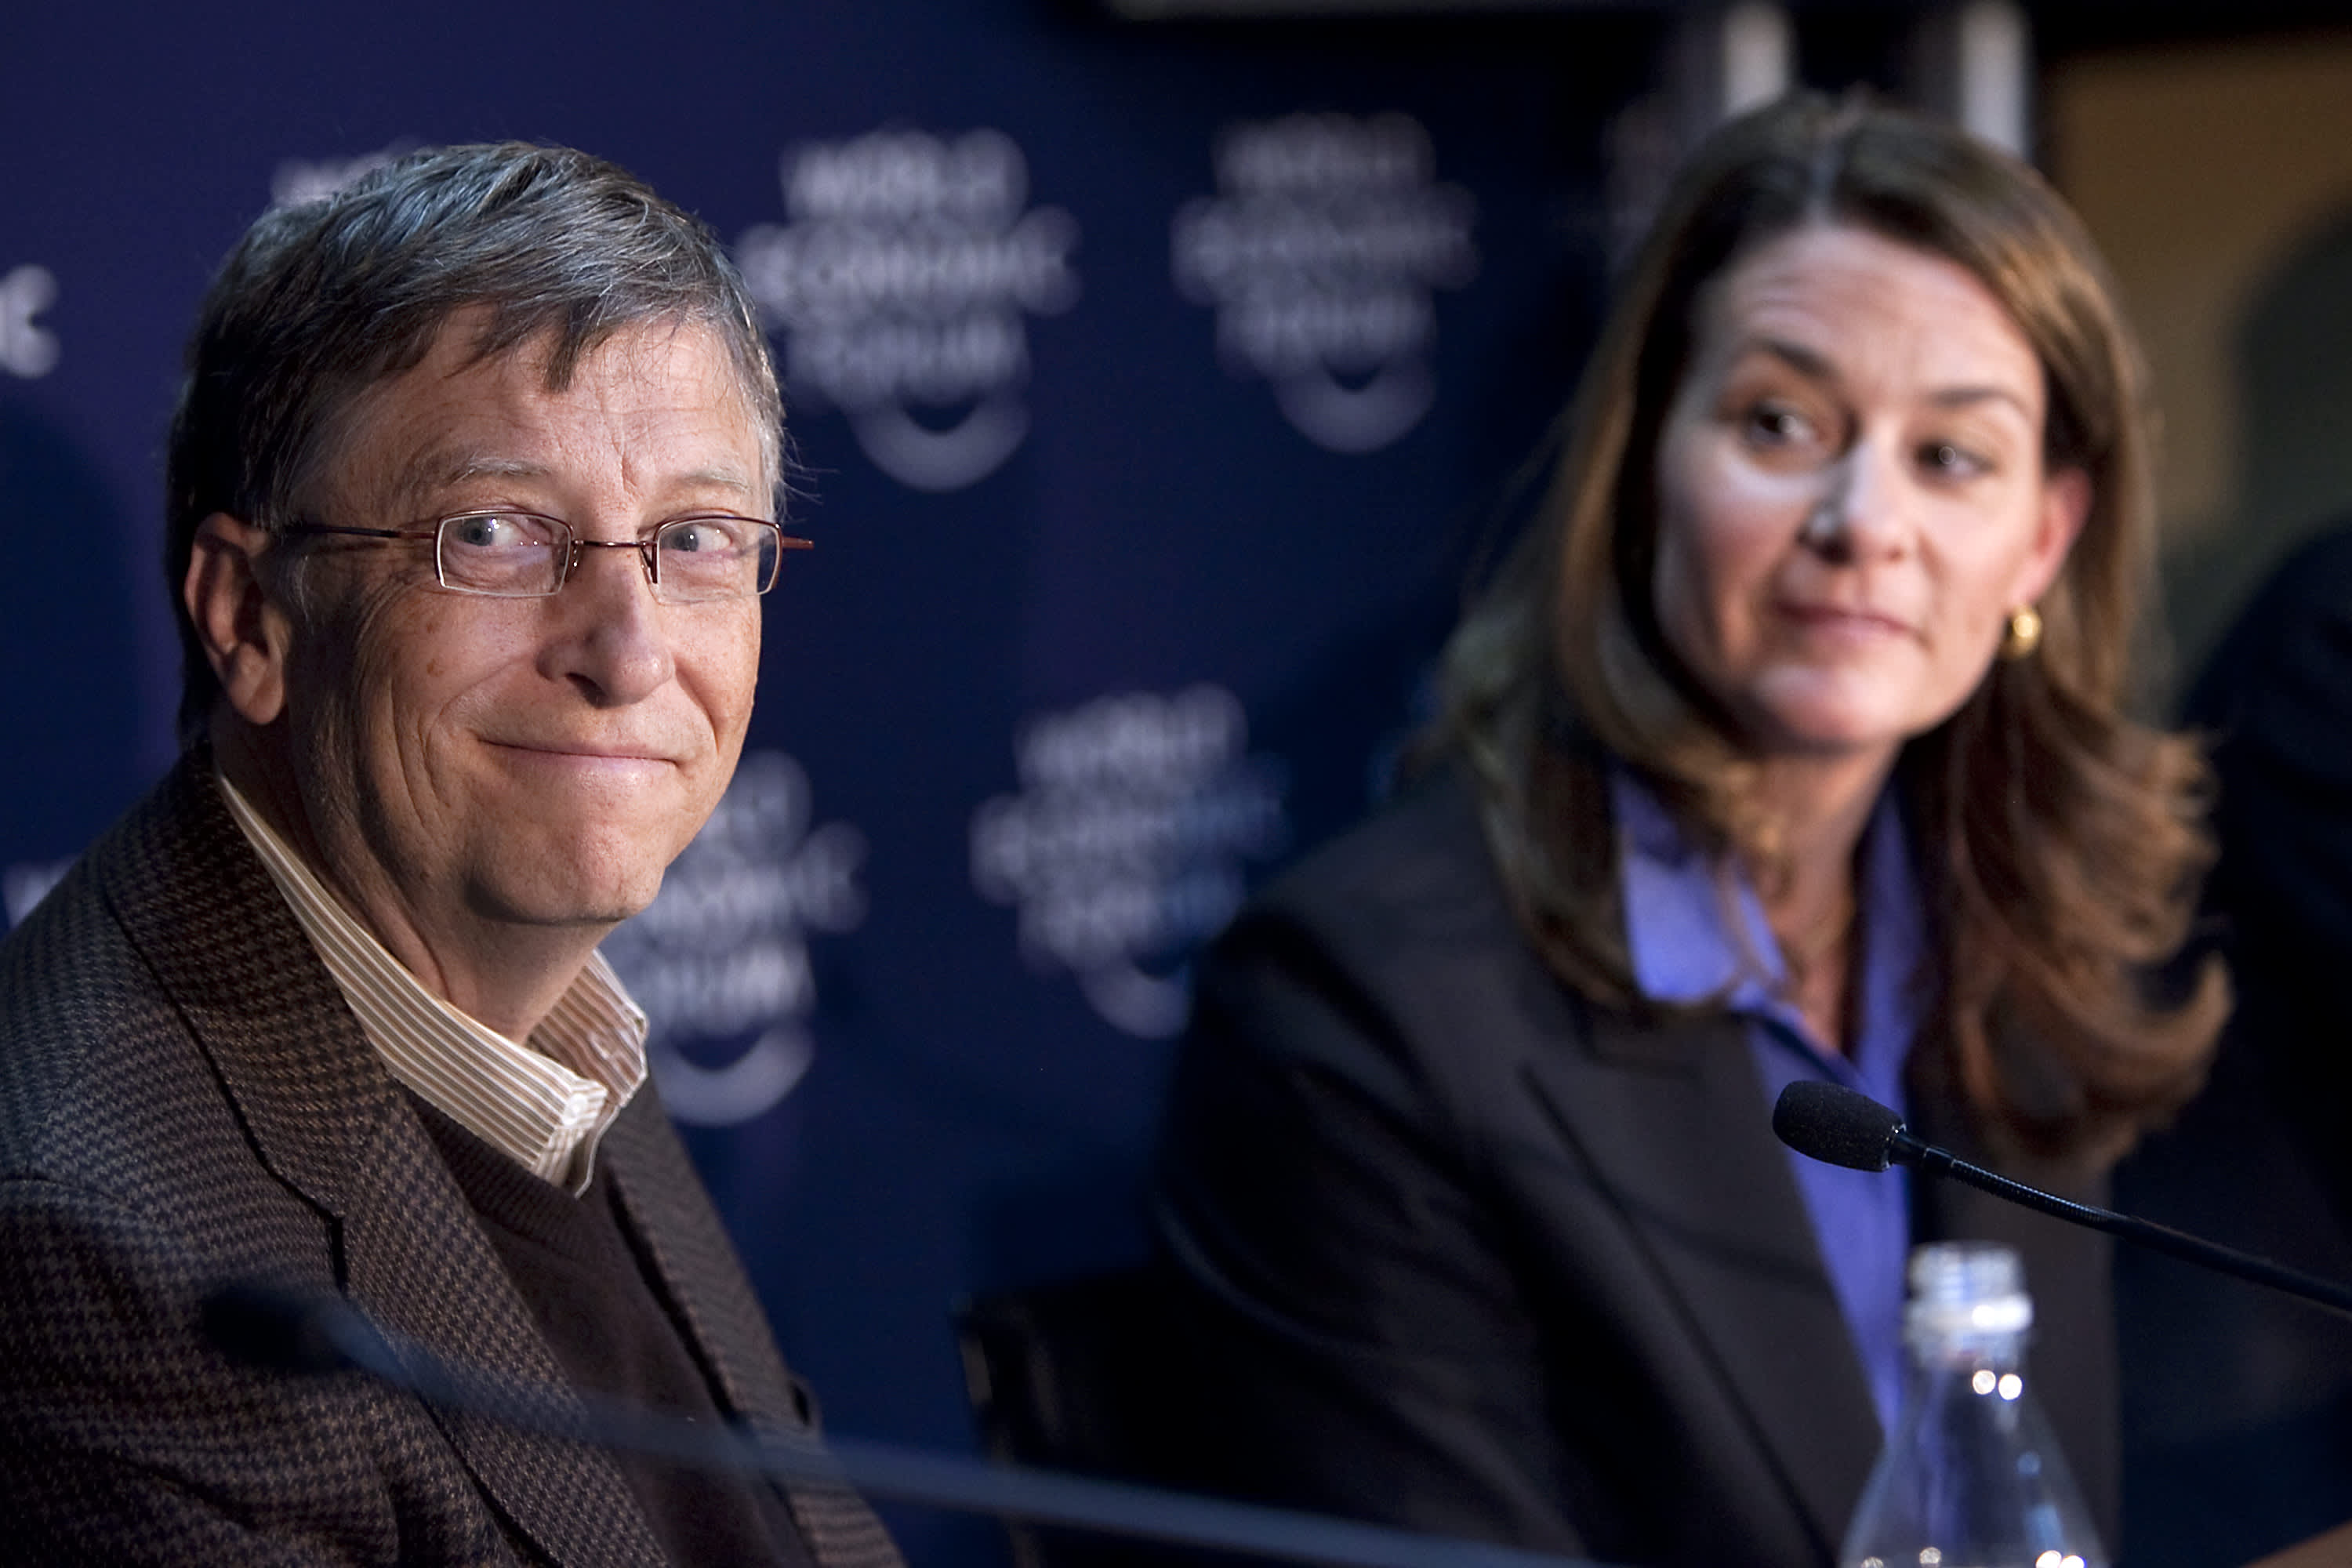 Bill Gates and Melinda French Gates are officially divorced following 27-year marriage